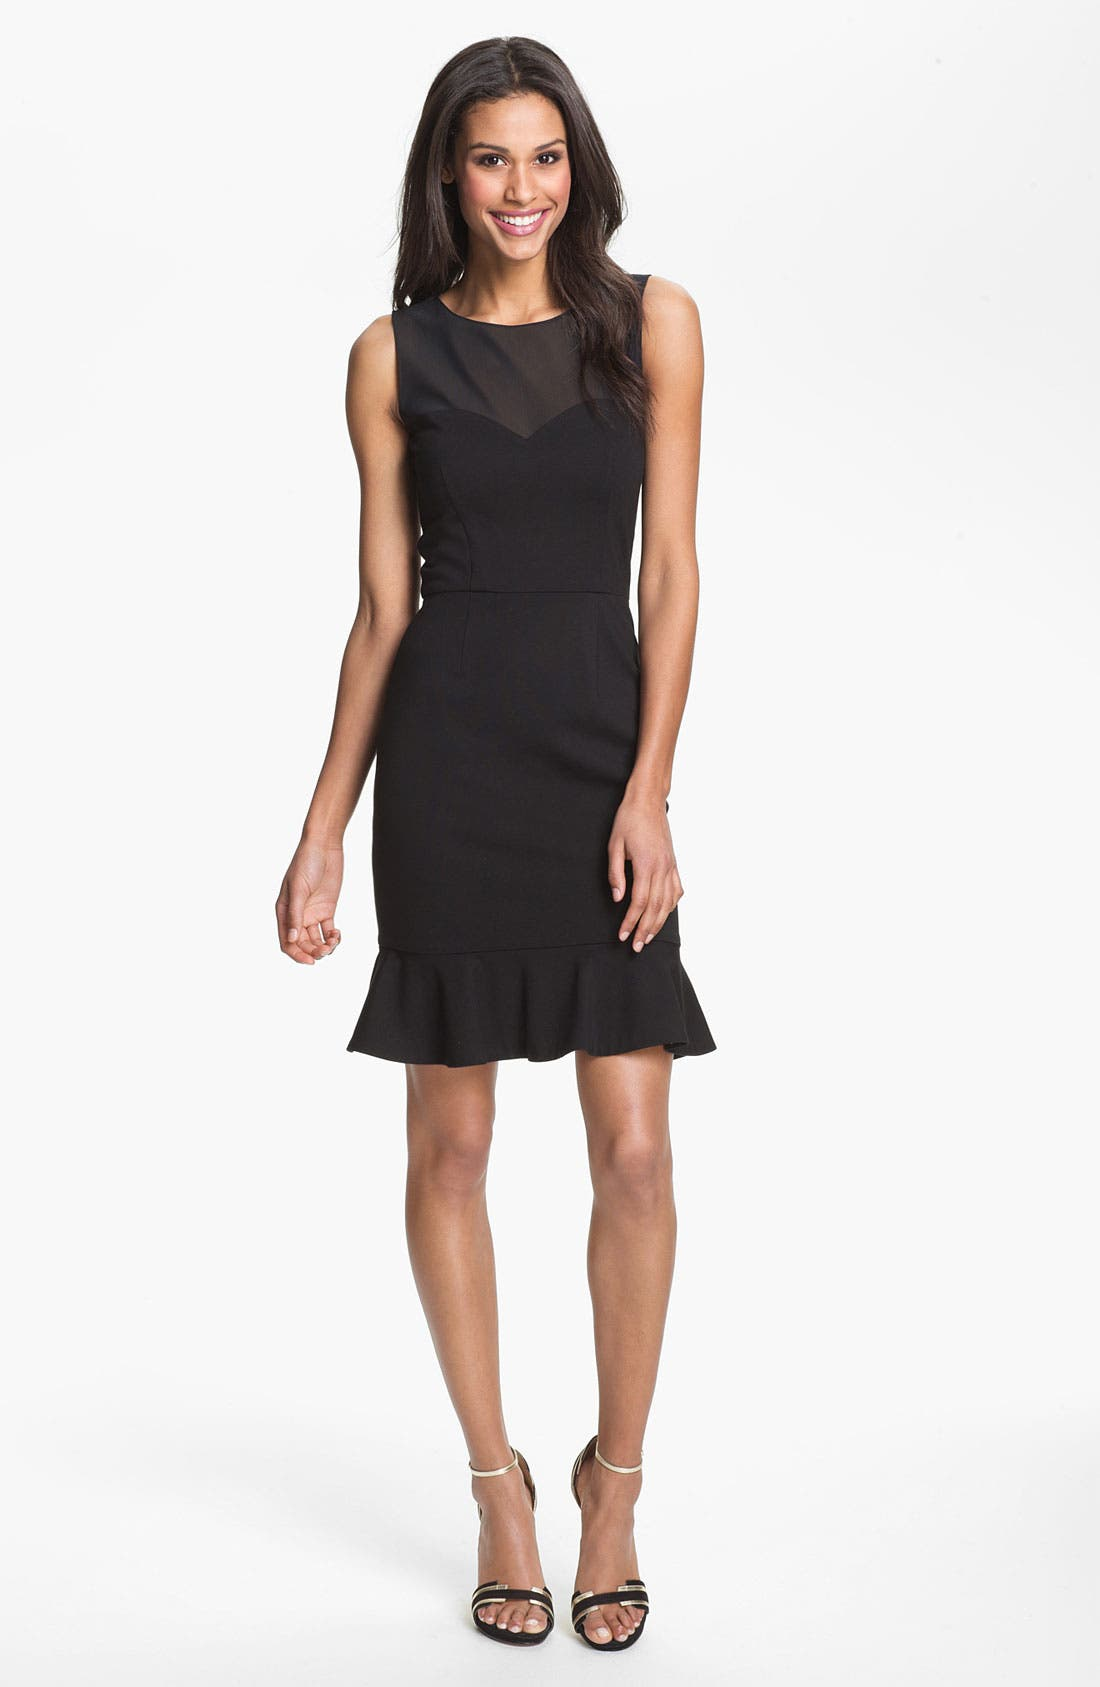 Alternate Image 1 Selected - ERIN erin fetherston Mesh Yoke Sheath Dress